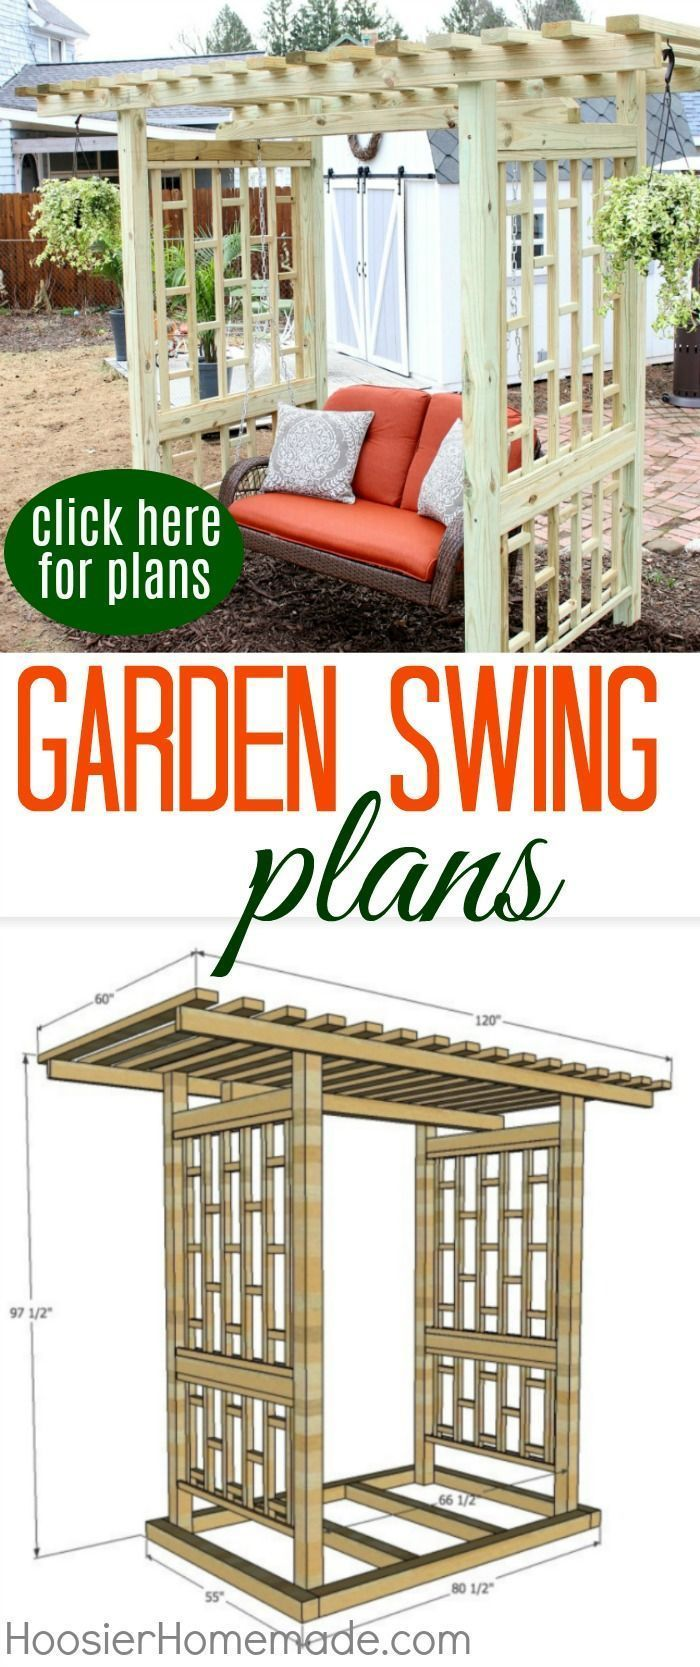 Garden swing plans give this easy weekend project a try plans